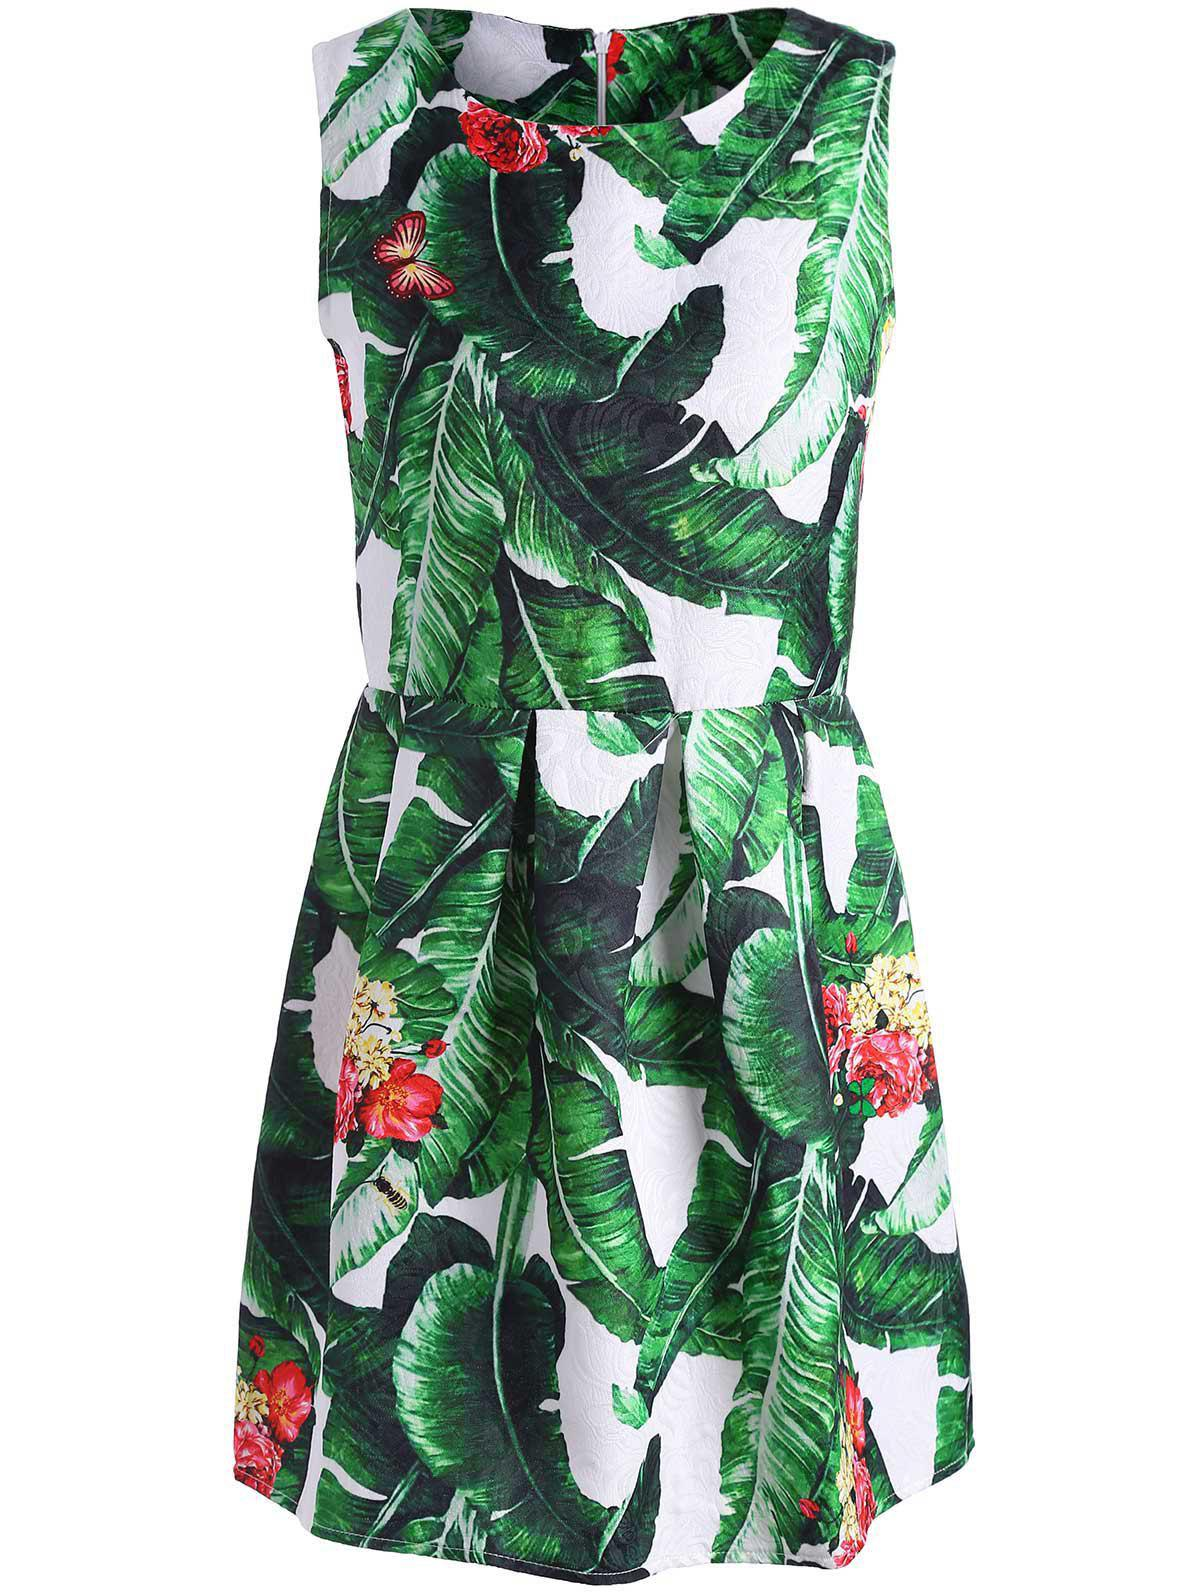 Palm Leaf Print Mini Sleeveless Dress adriatica часы adriatica 3638 1173q коллекция zirconia